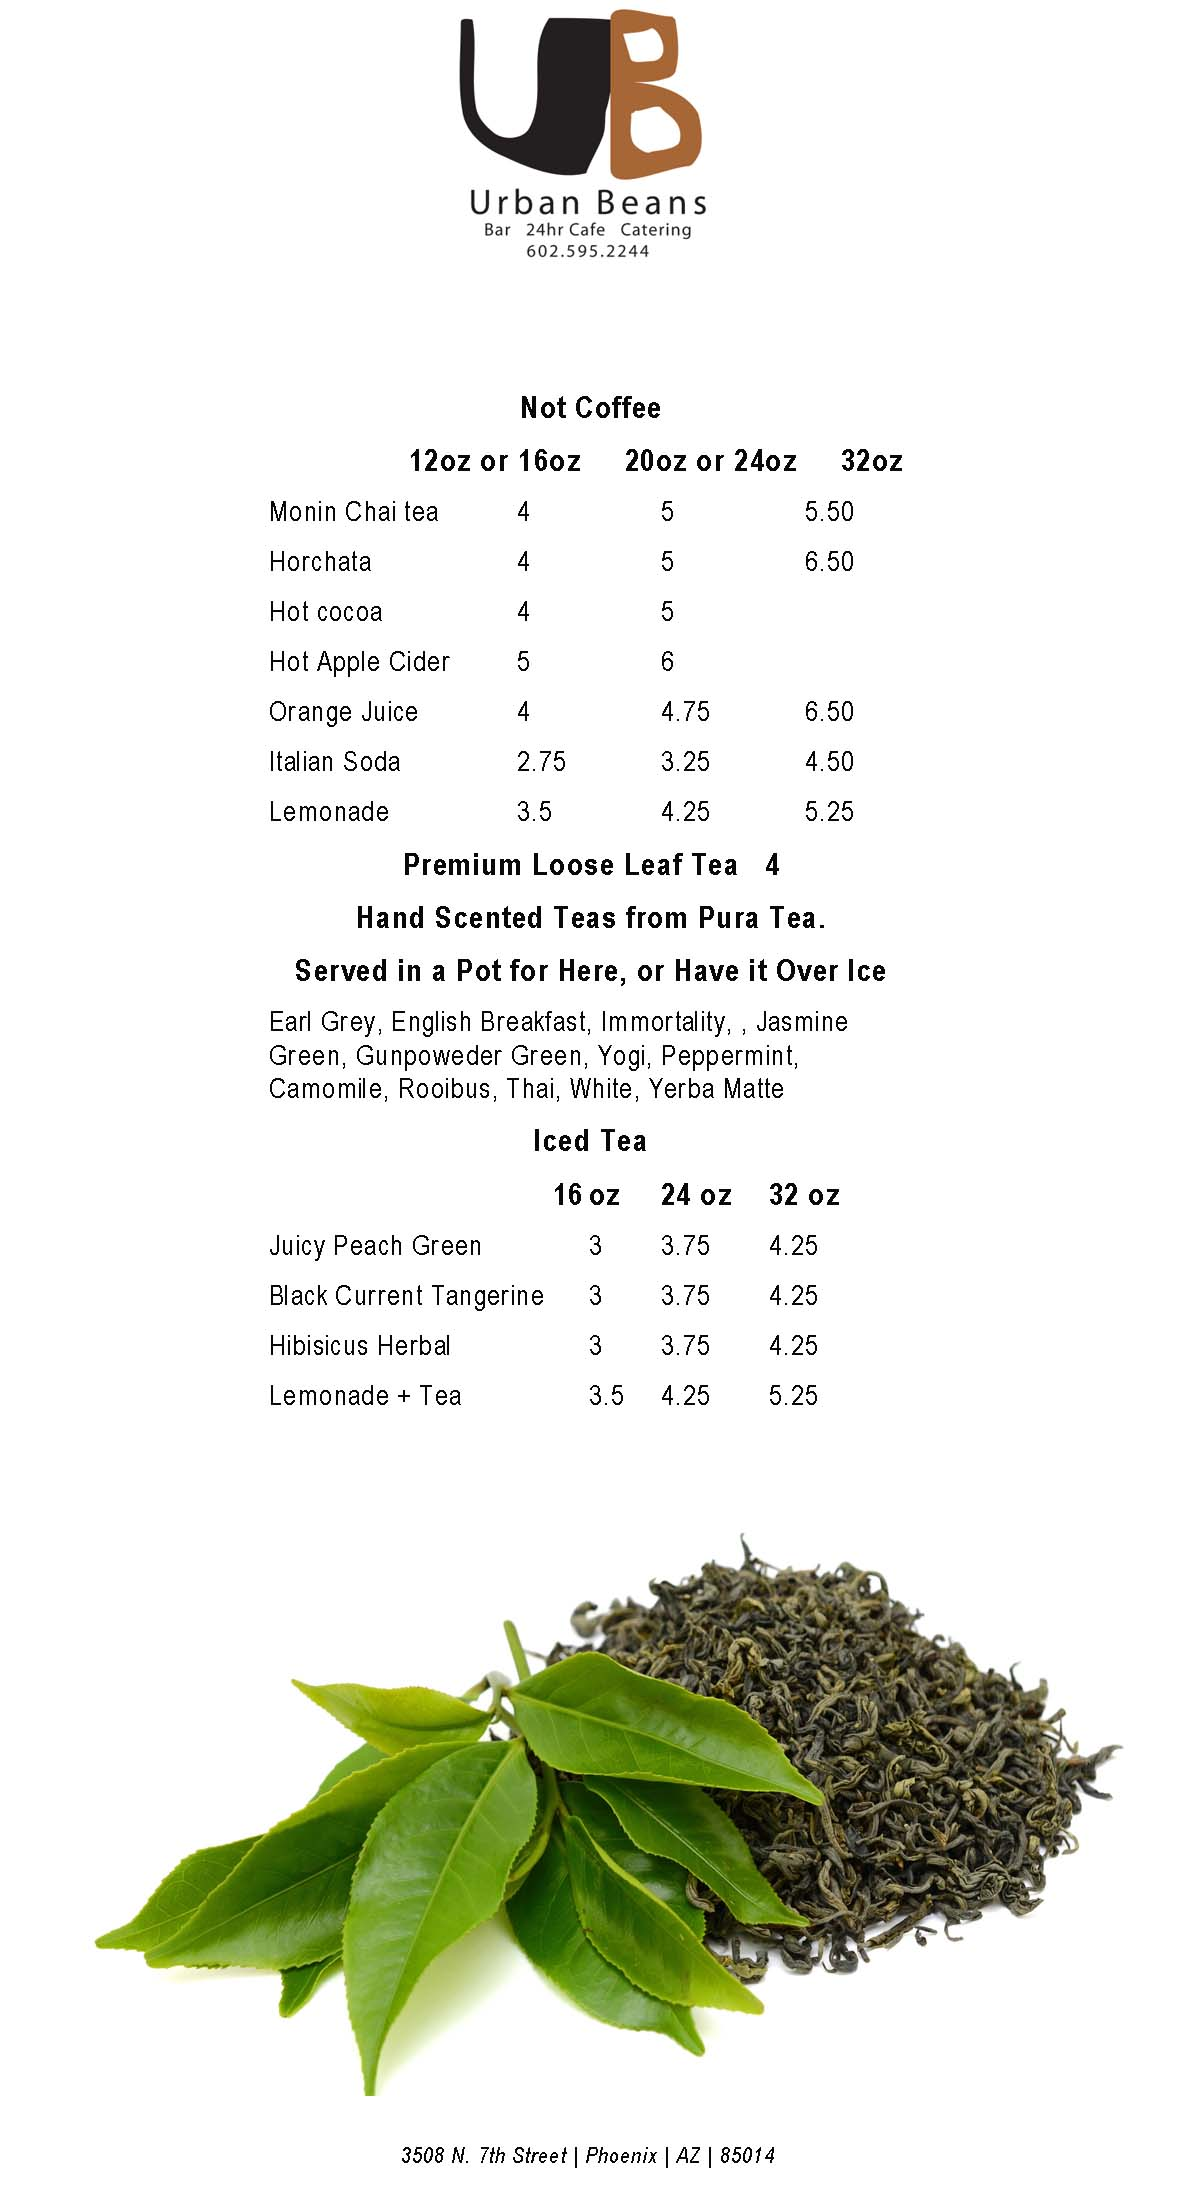 Urban Beans Tea and Non-Coffee Beverage Menu